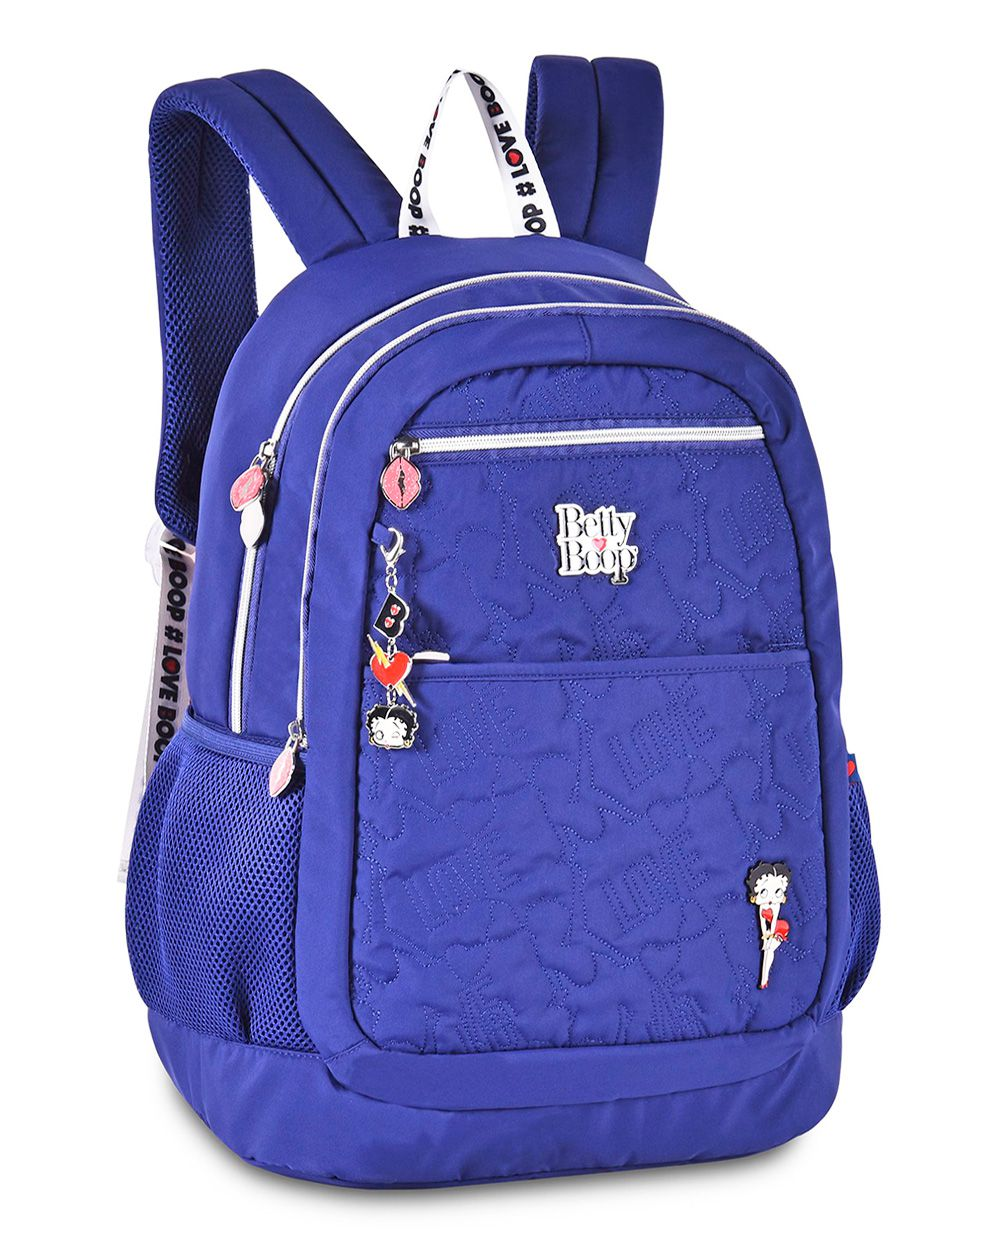 Mochila Betty Boop BP2309 Feminina Notebook Escolar Juvenil